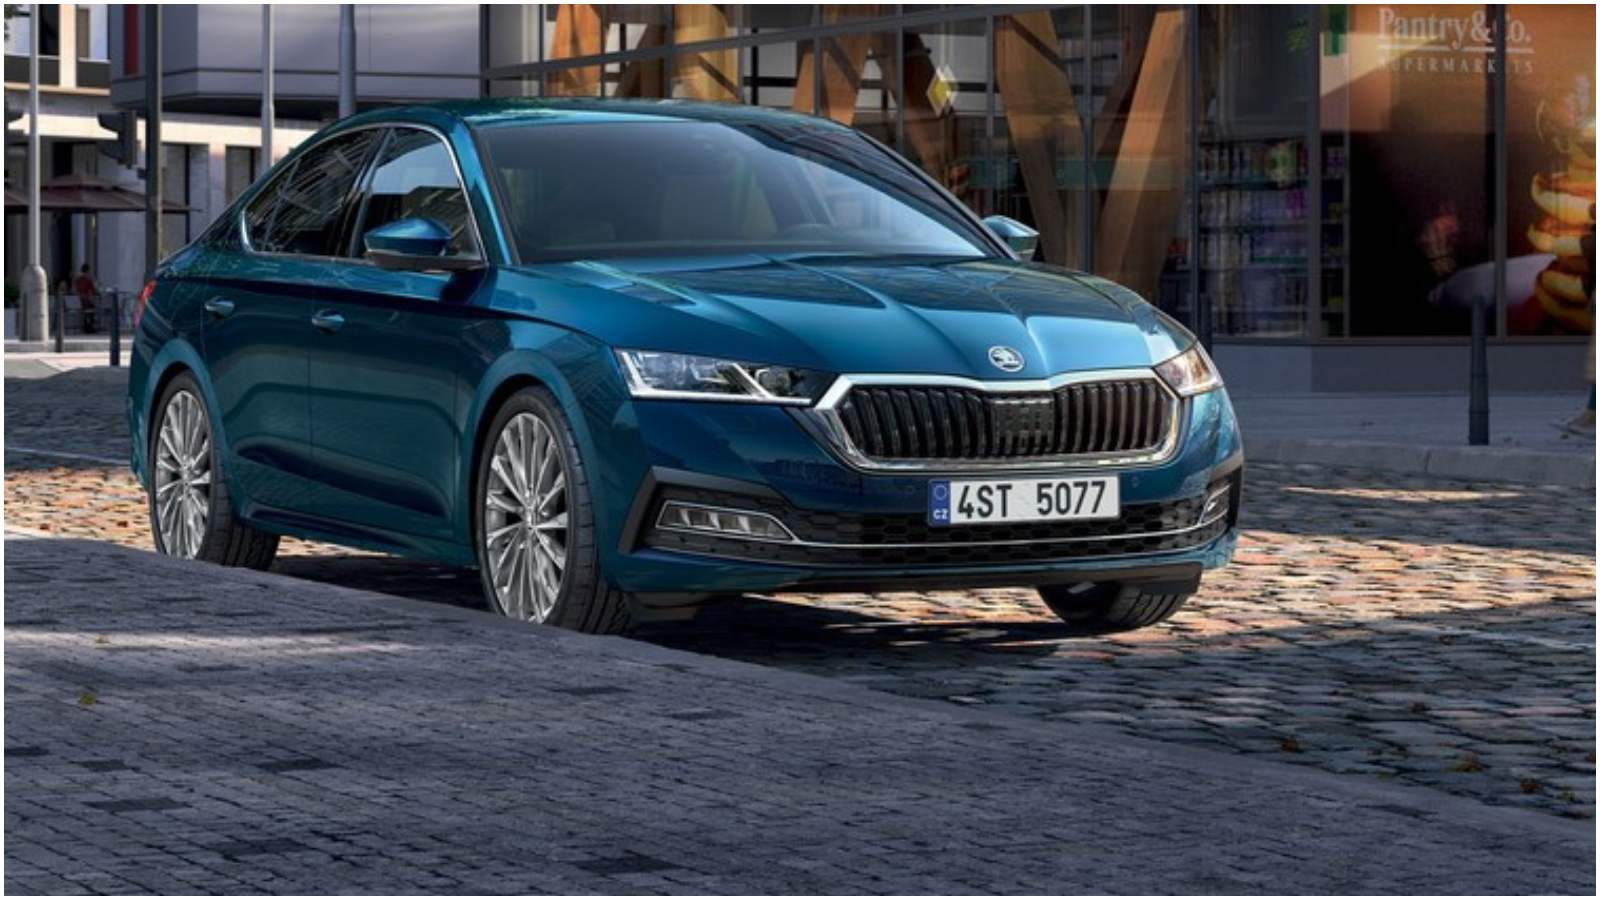 Skoda Latest Auto News And Reviews Page 2 Motoroids